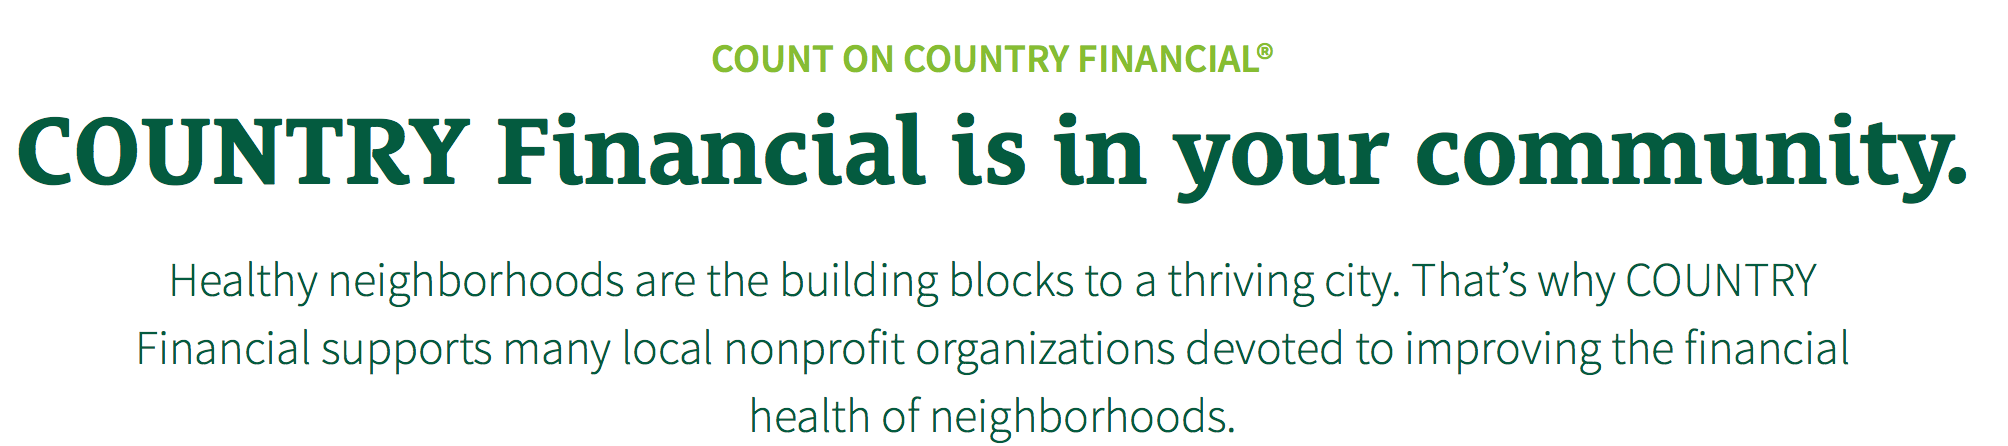 COUNTRY FINANCIAL MINNEAPOLIS